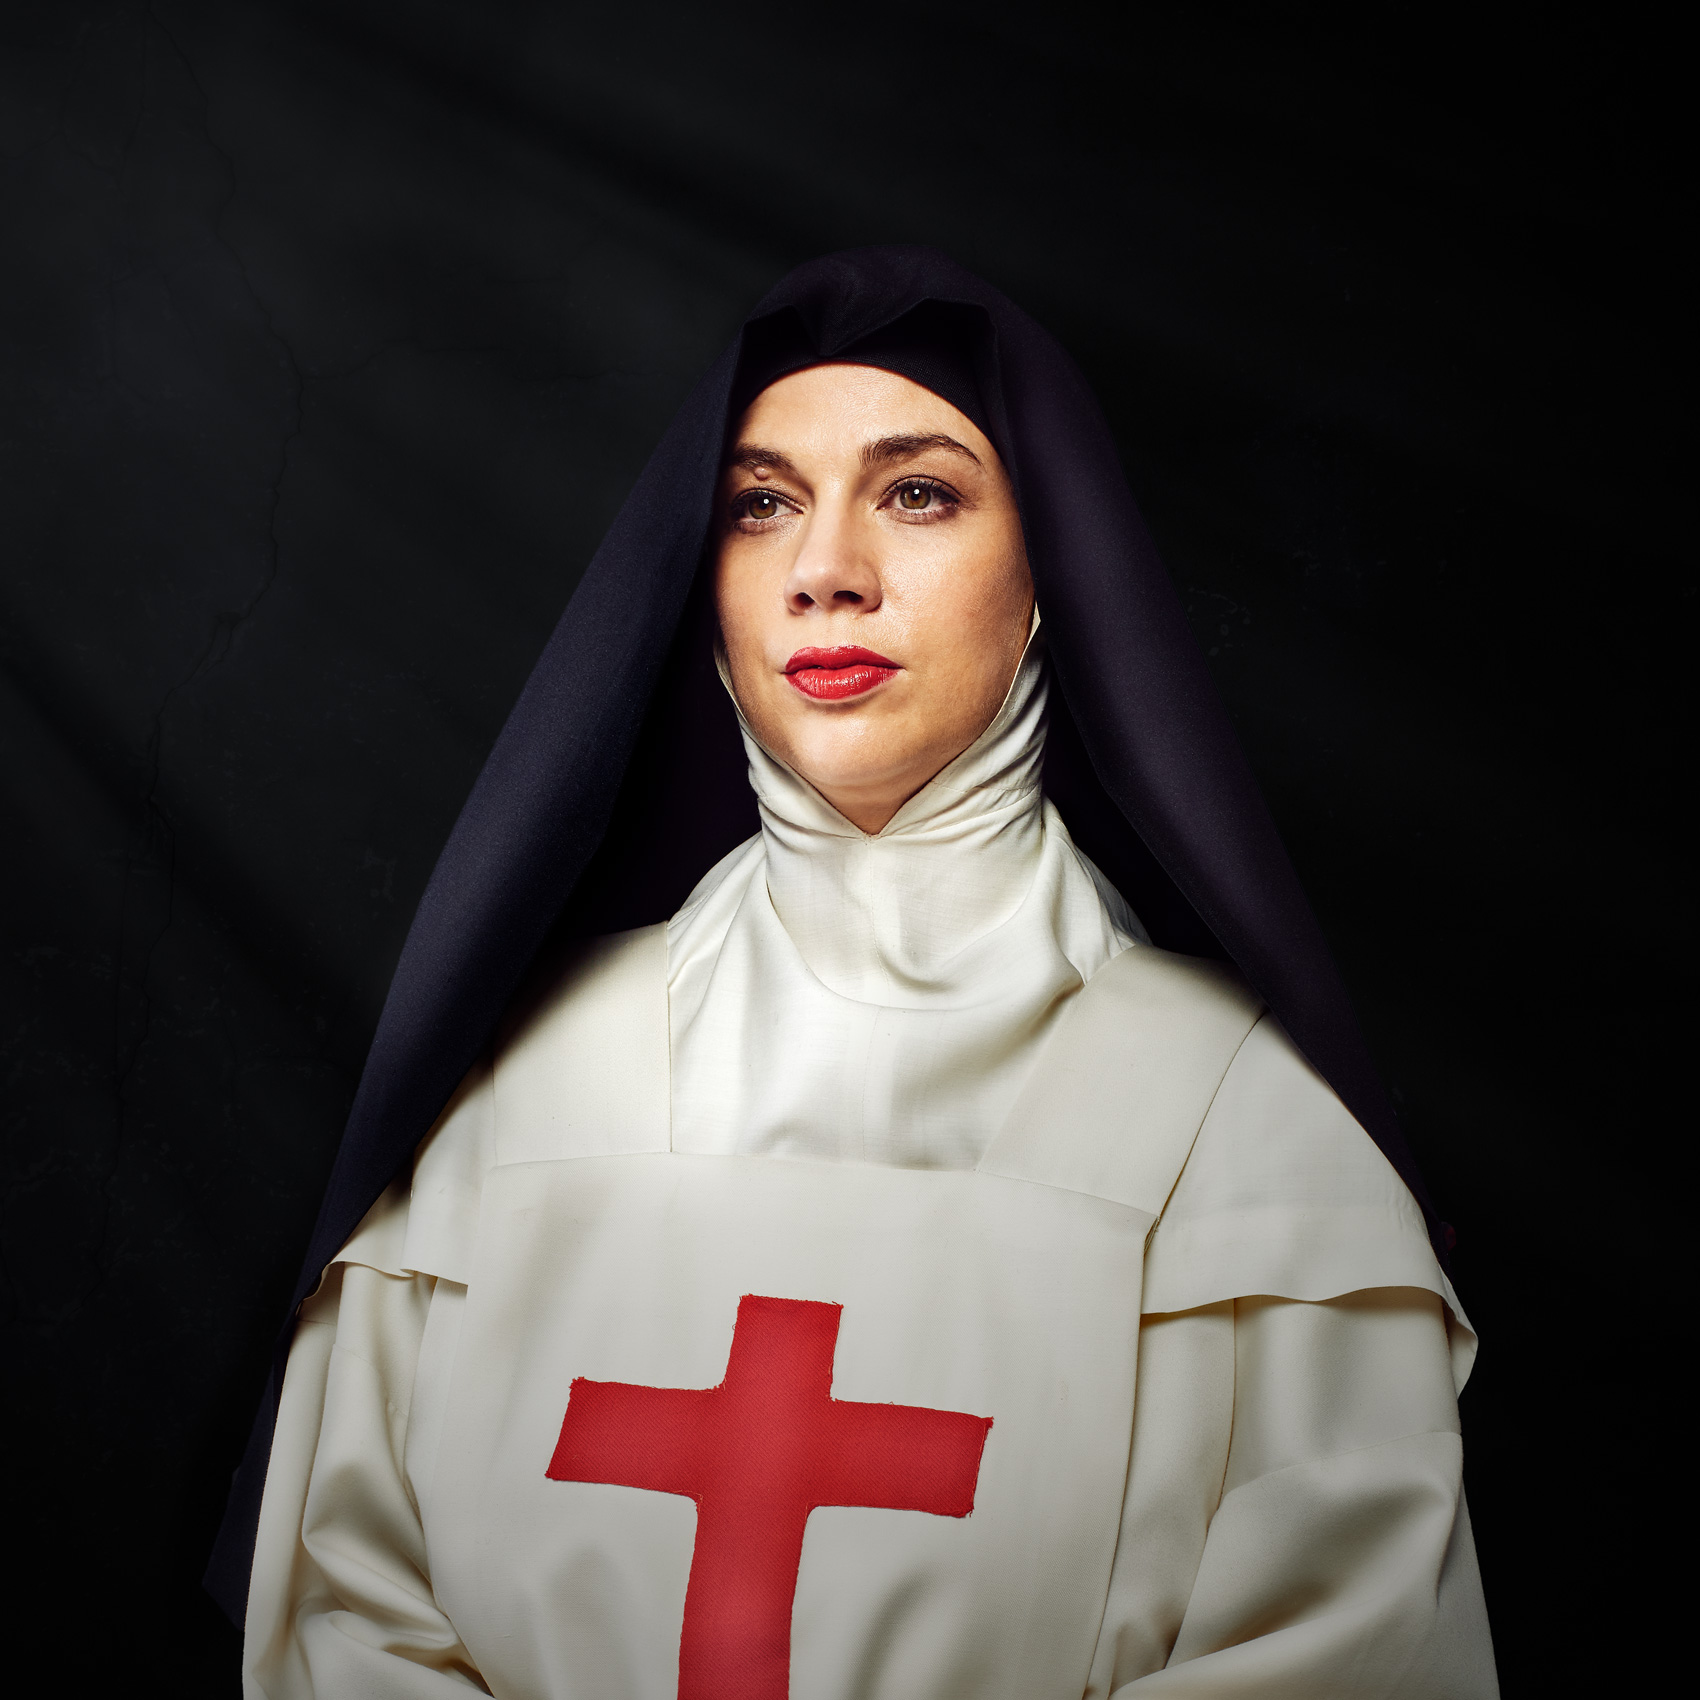 Portrait of a nun on a black background photographed by Dave Rentauskas